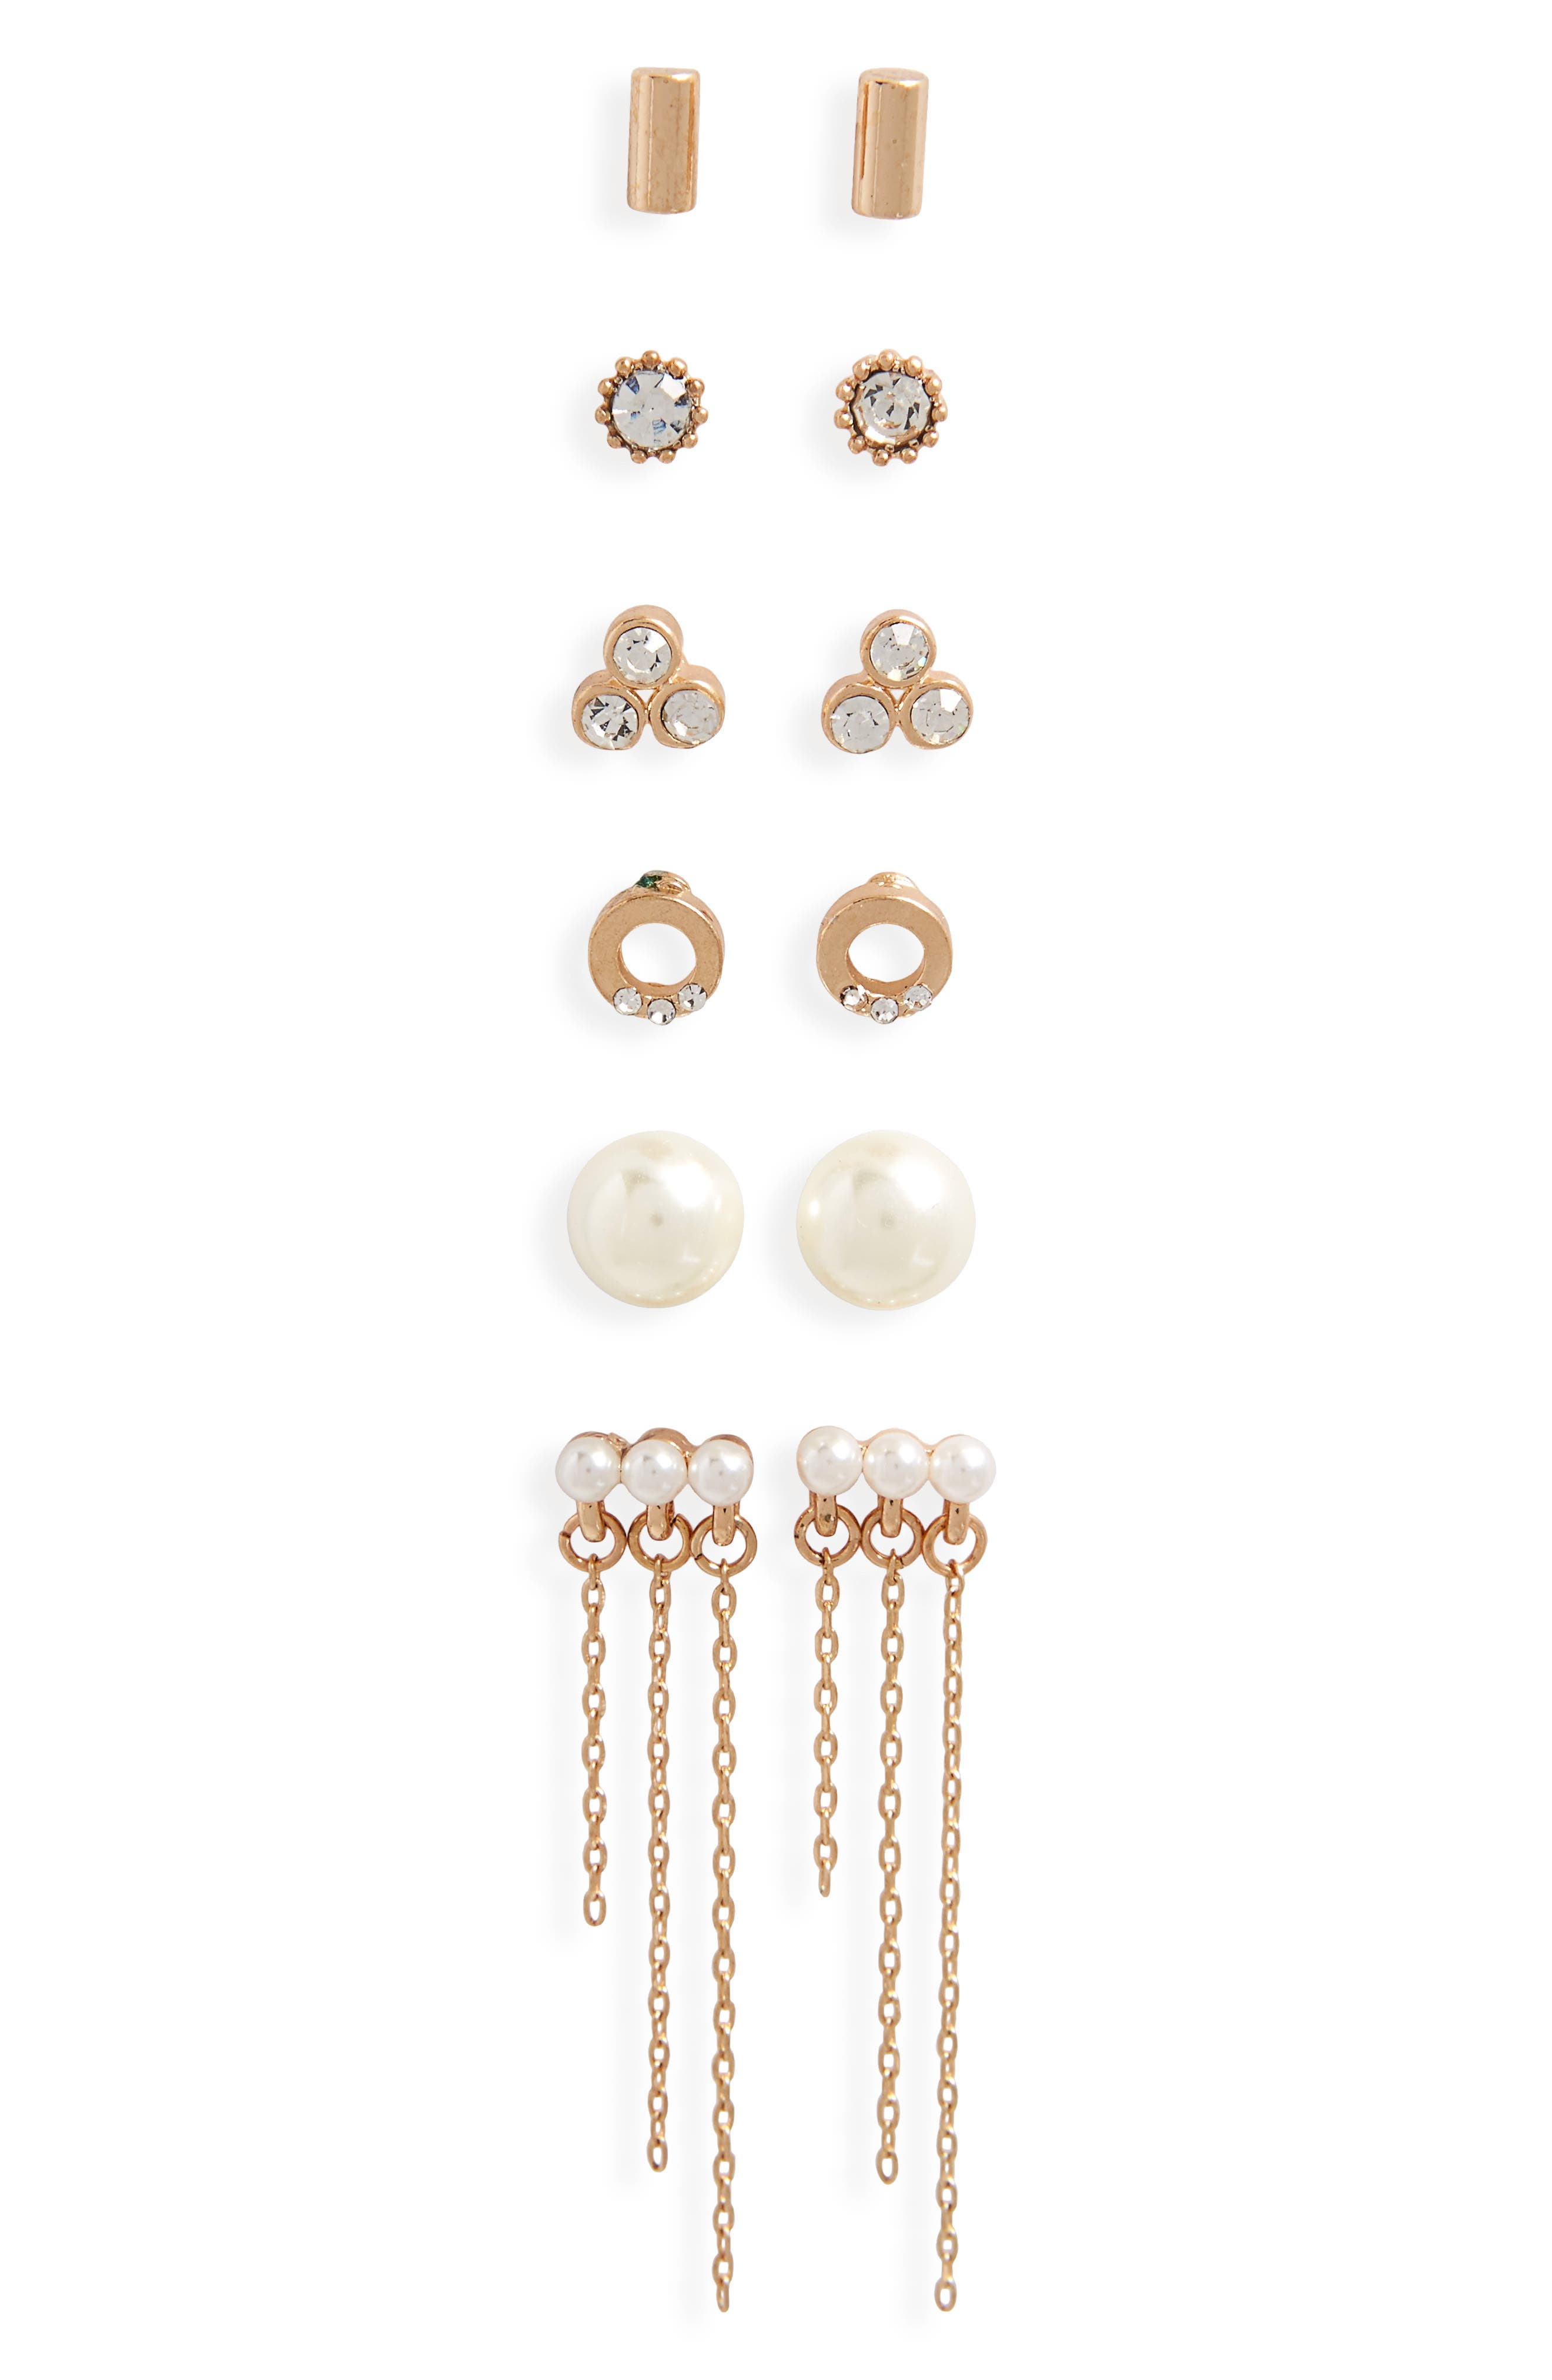 6-Pack Imitation Pearl & Crystal Earrings,                         Main,                         color, Gold